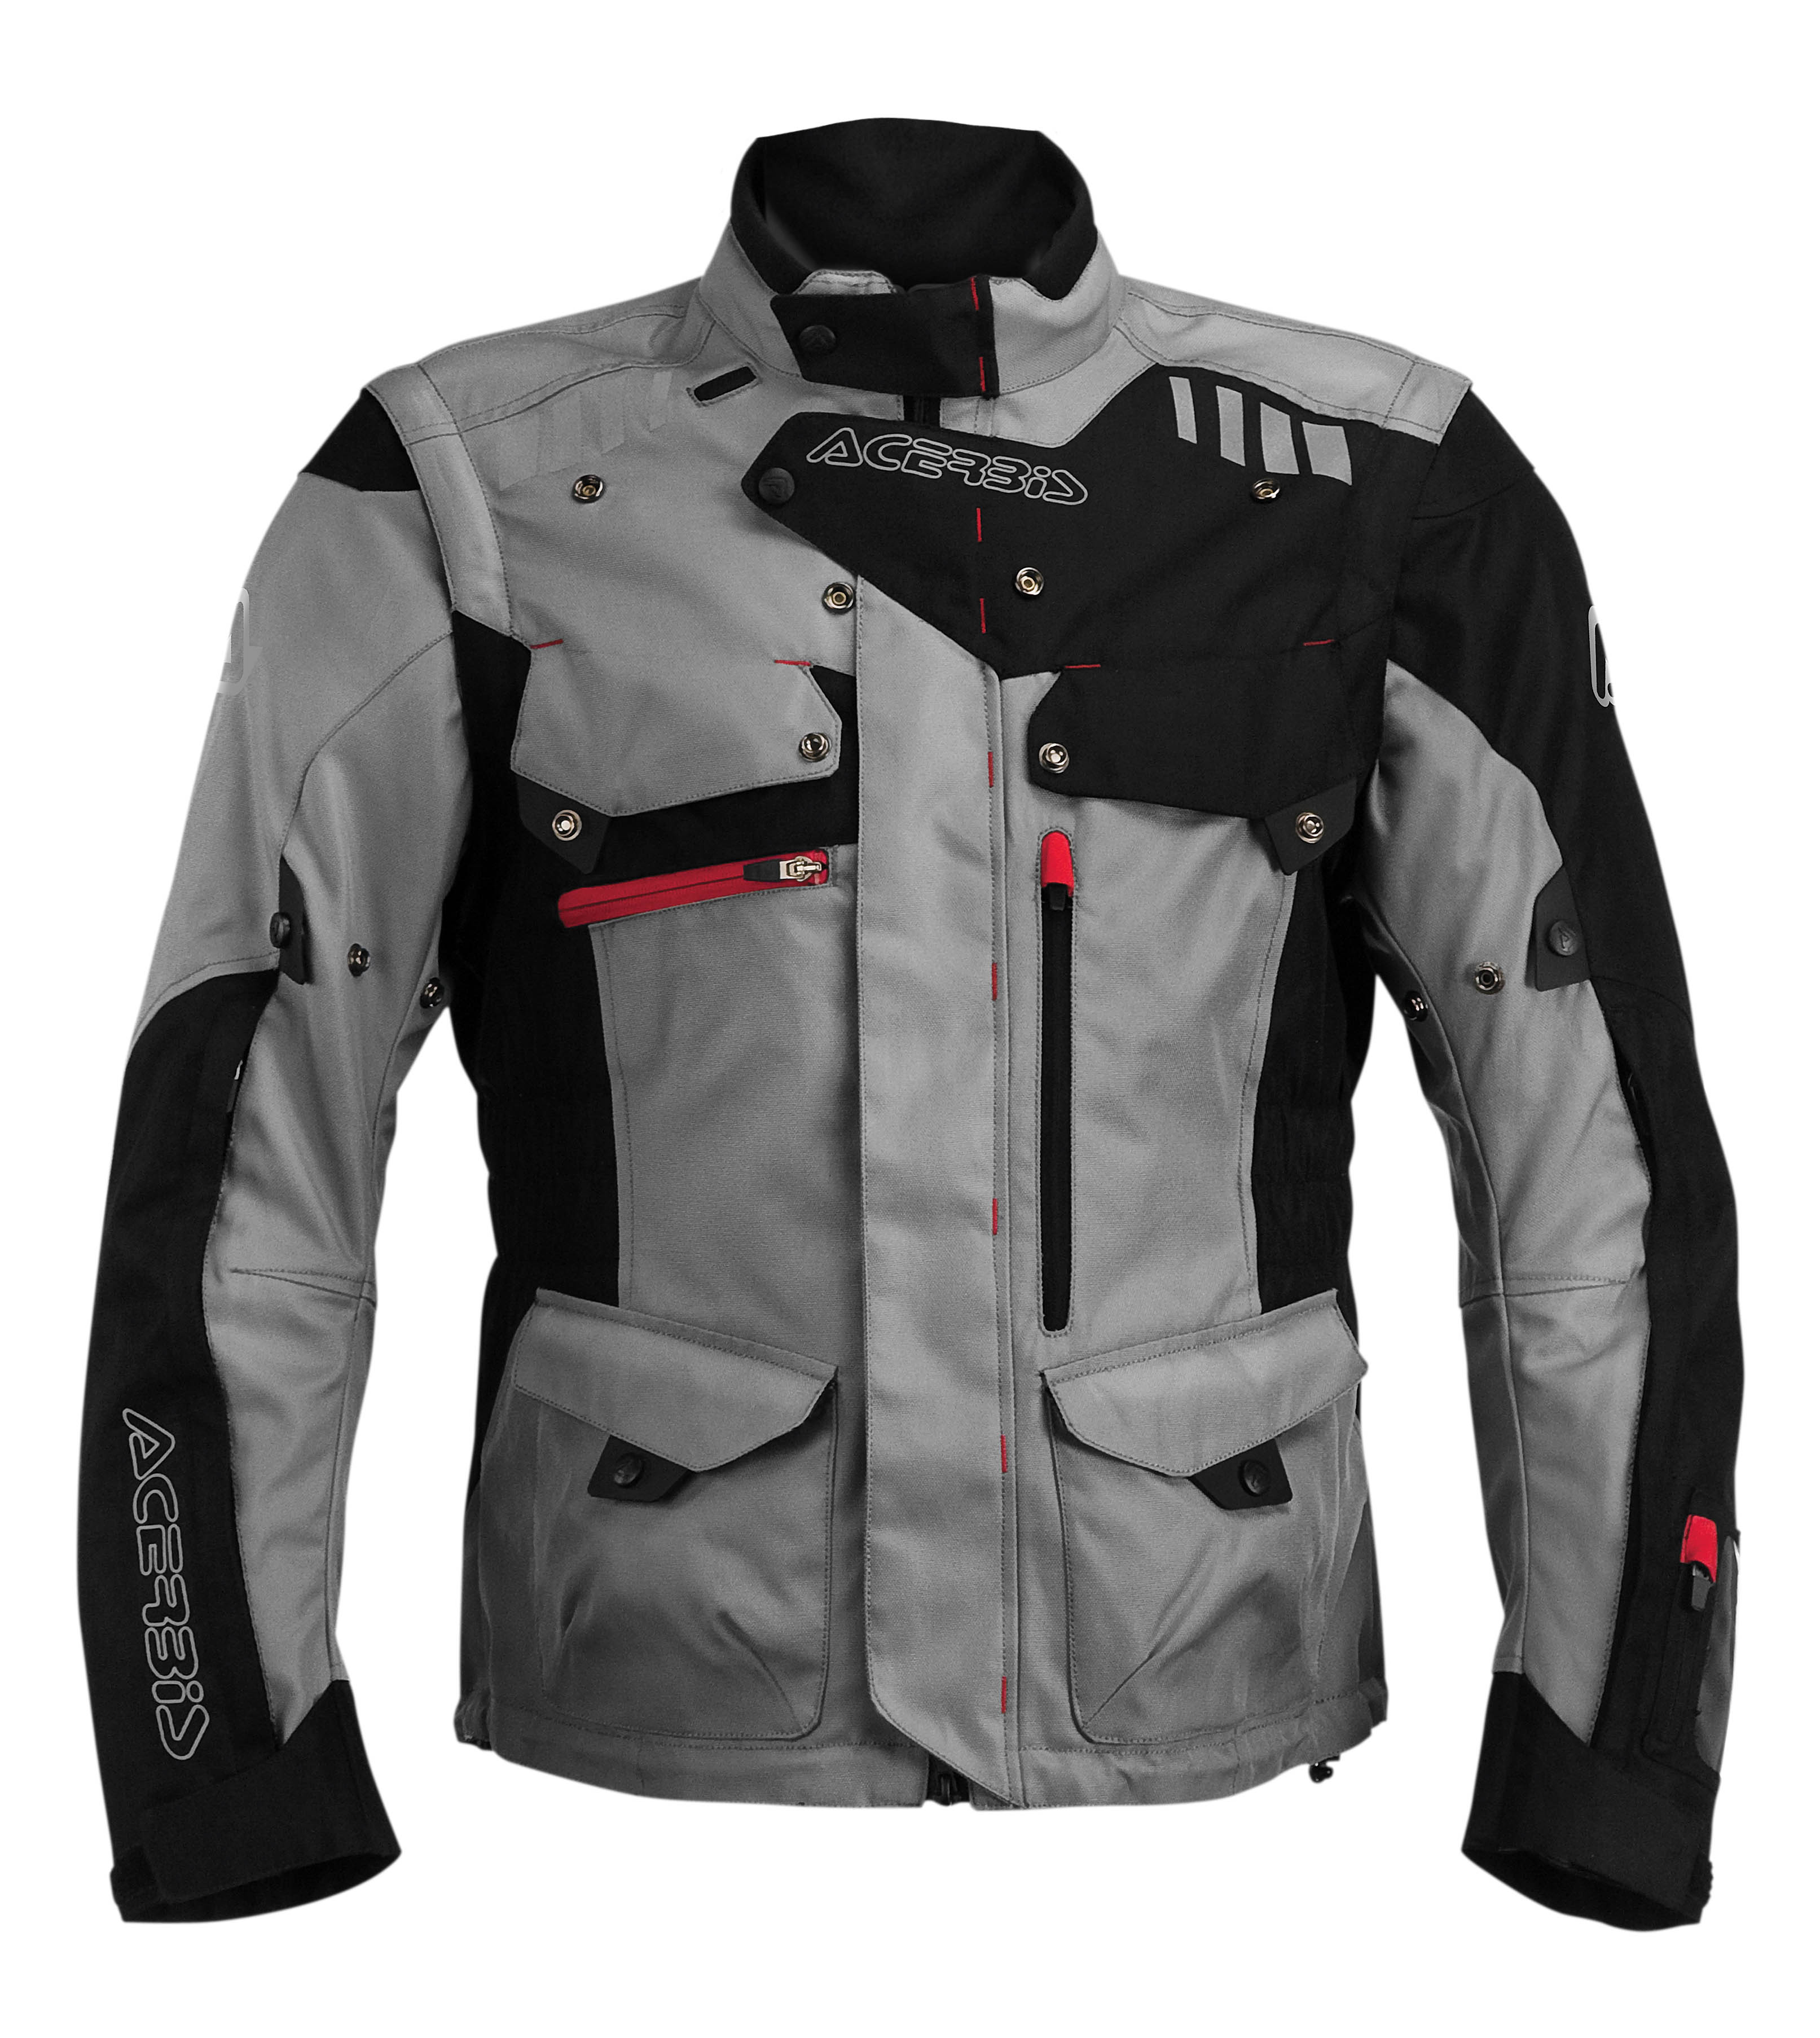 Acerbis Adventure Jacket And Pants Industry News